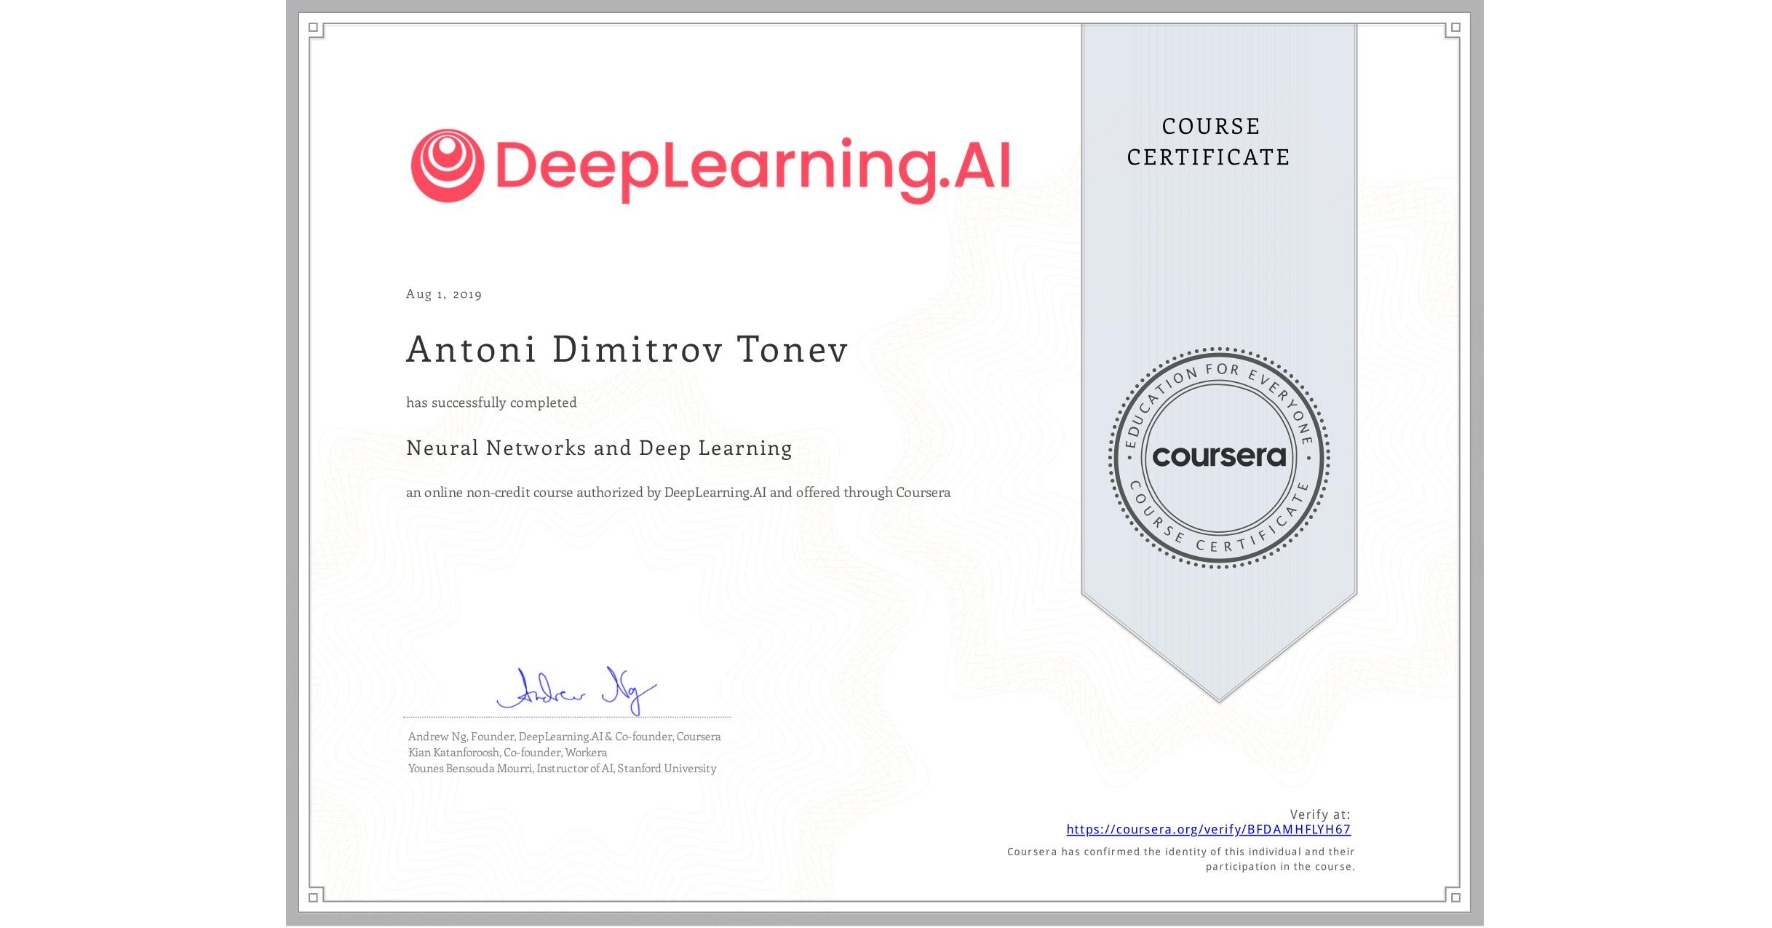 View certificate for Antoni Dimitrov Tonev, Neural Networks and Deep Learning, an online non-credit course authorized by DeepLearning.AI and offered through Coursera